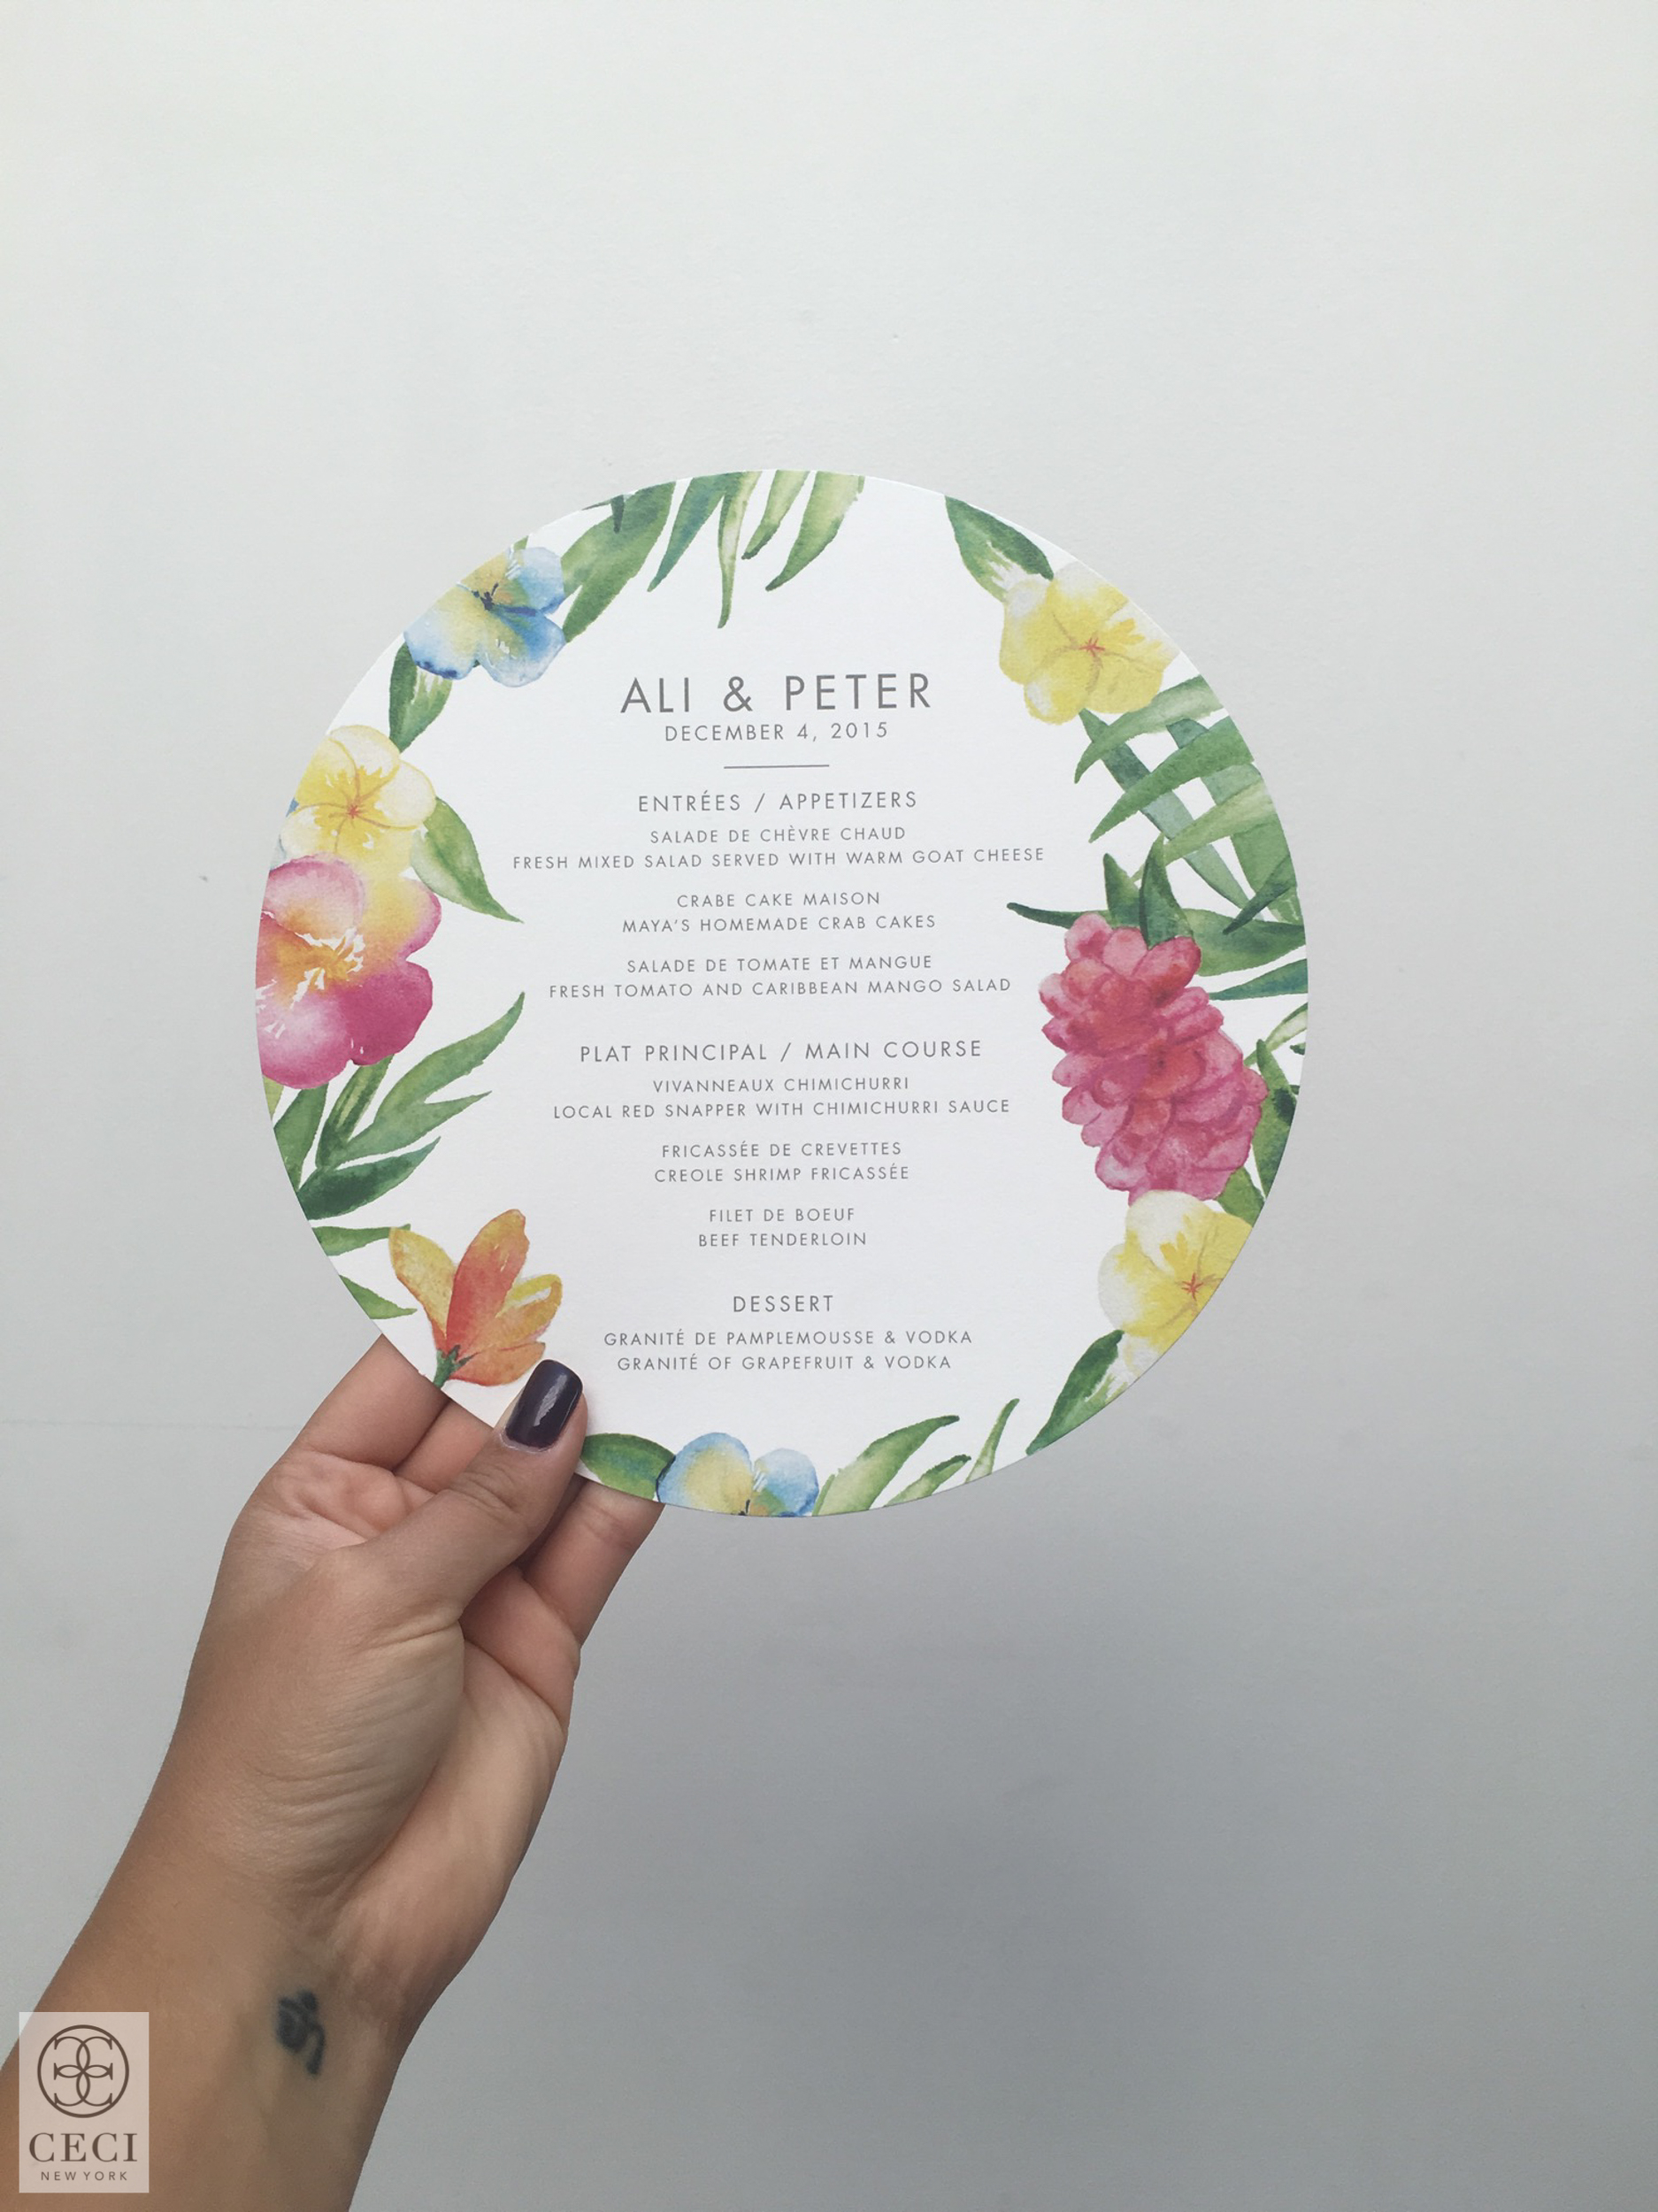 Ceci_New_York_Ceci_Style_Ceci_Johnson_Luxury_Lifestyle_Destination_St._Barts_Wedding_Letterpress_Watercolor_Floral_Hand_Painted_Inspiration_Design_Custom_Couture_Personalized_Invitations_.jpg